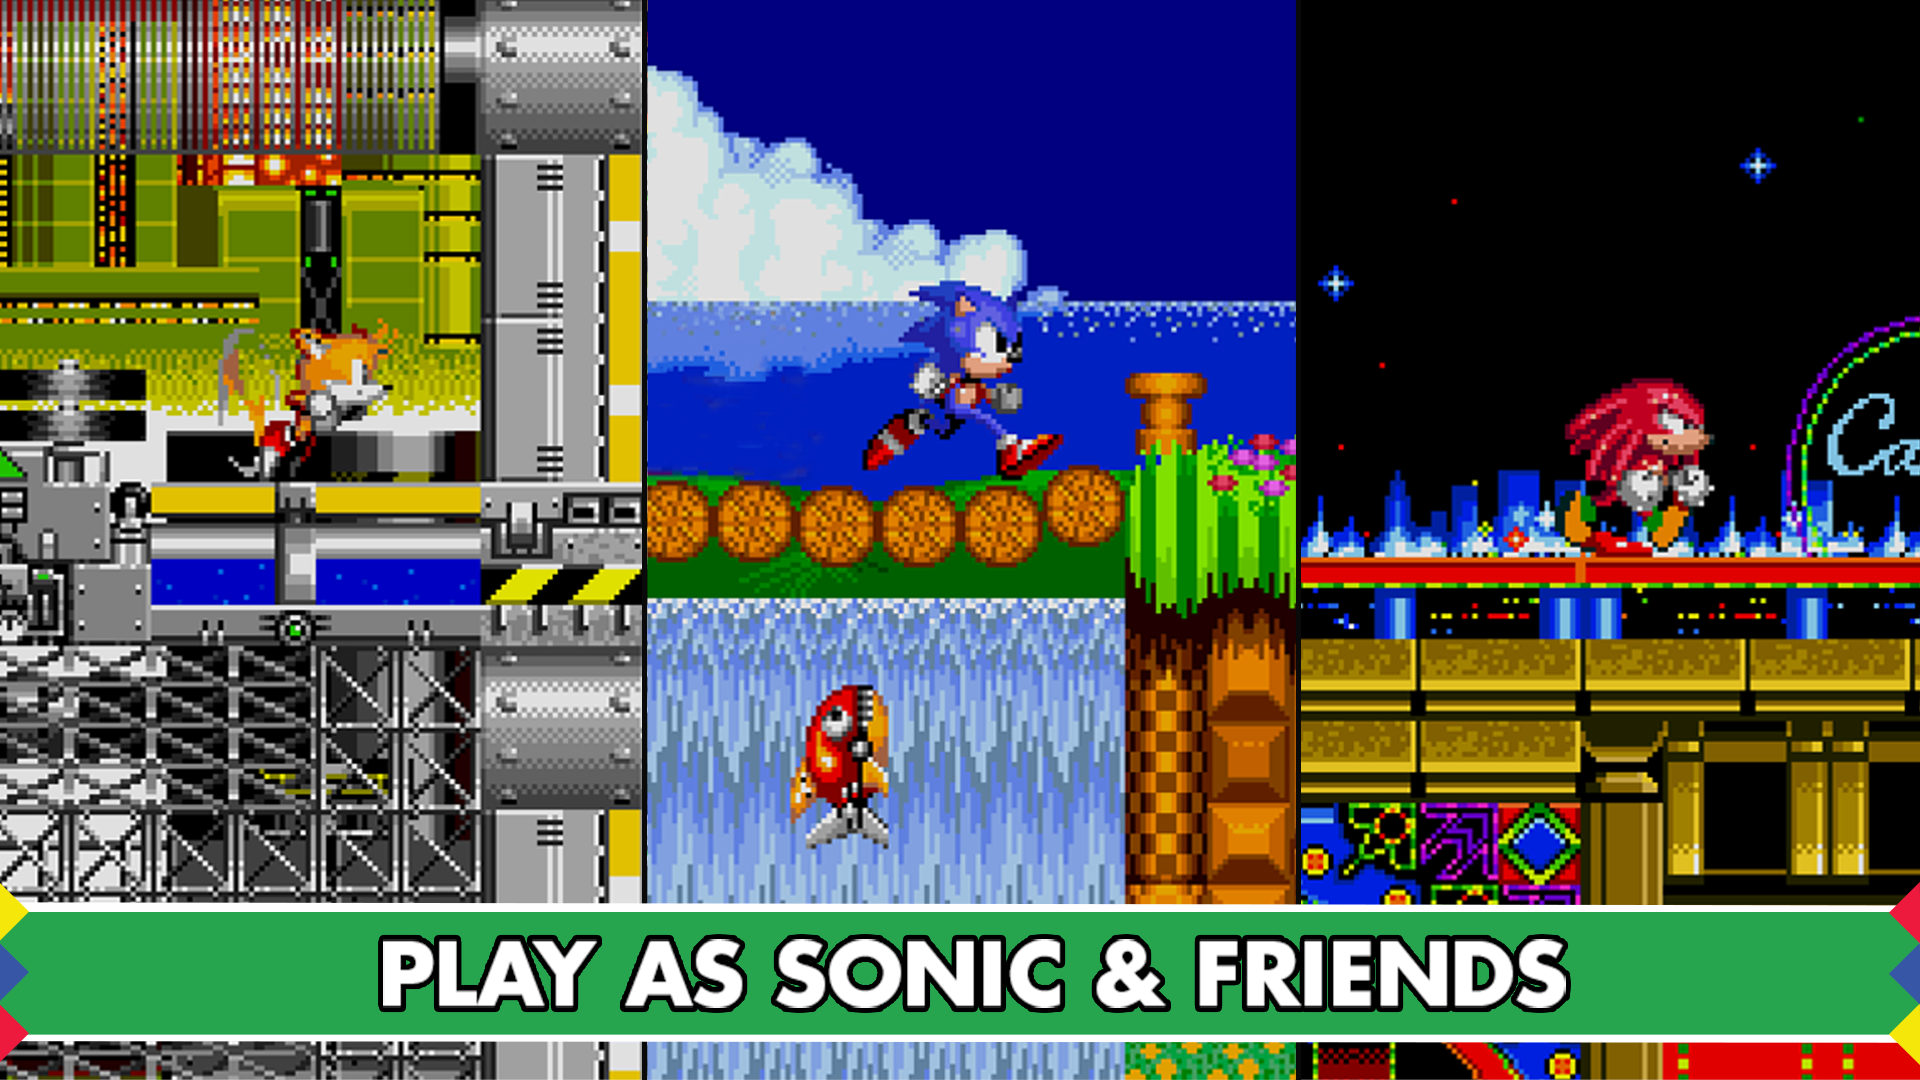 Amazon Com Sonic The Hedgehog 2 Appstore For Android